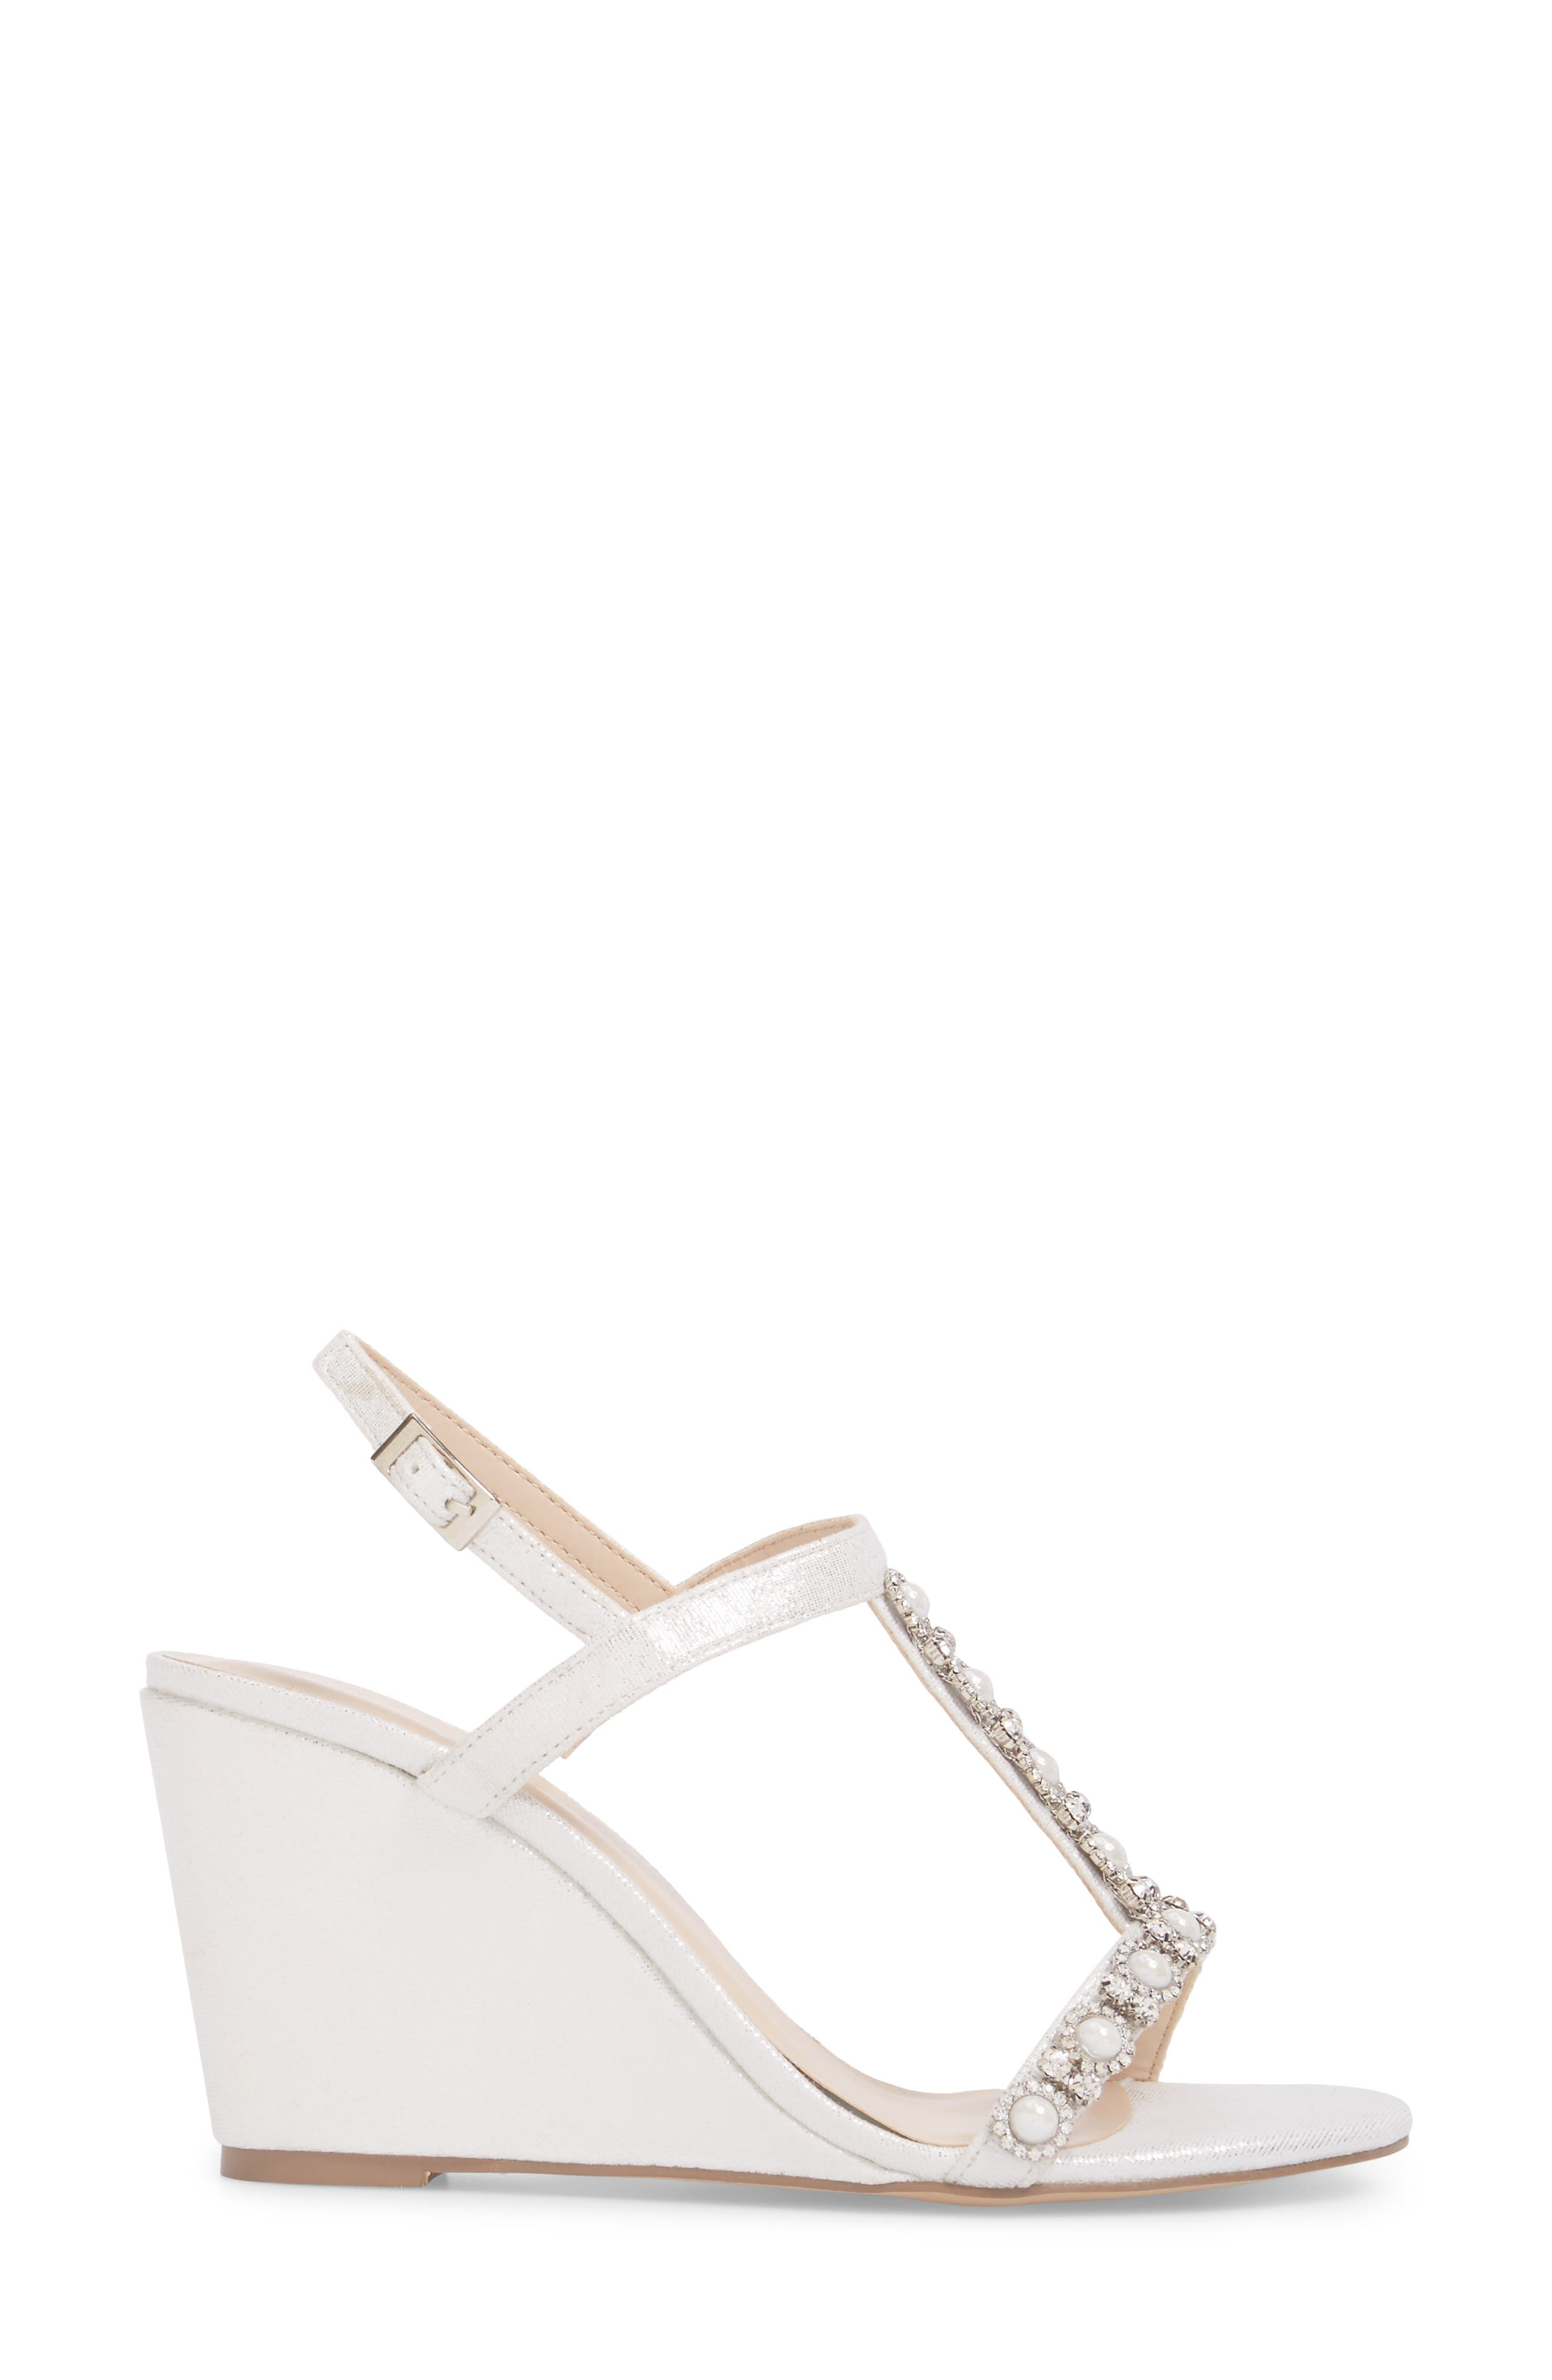 Kiana Embellished Wedge Sandal,                             Alternate thumbnail 3, color,                             Silver Glitter